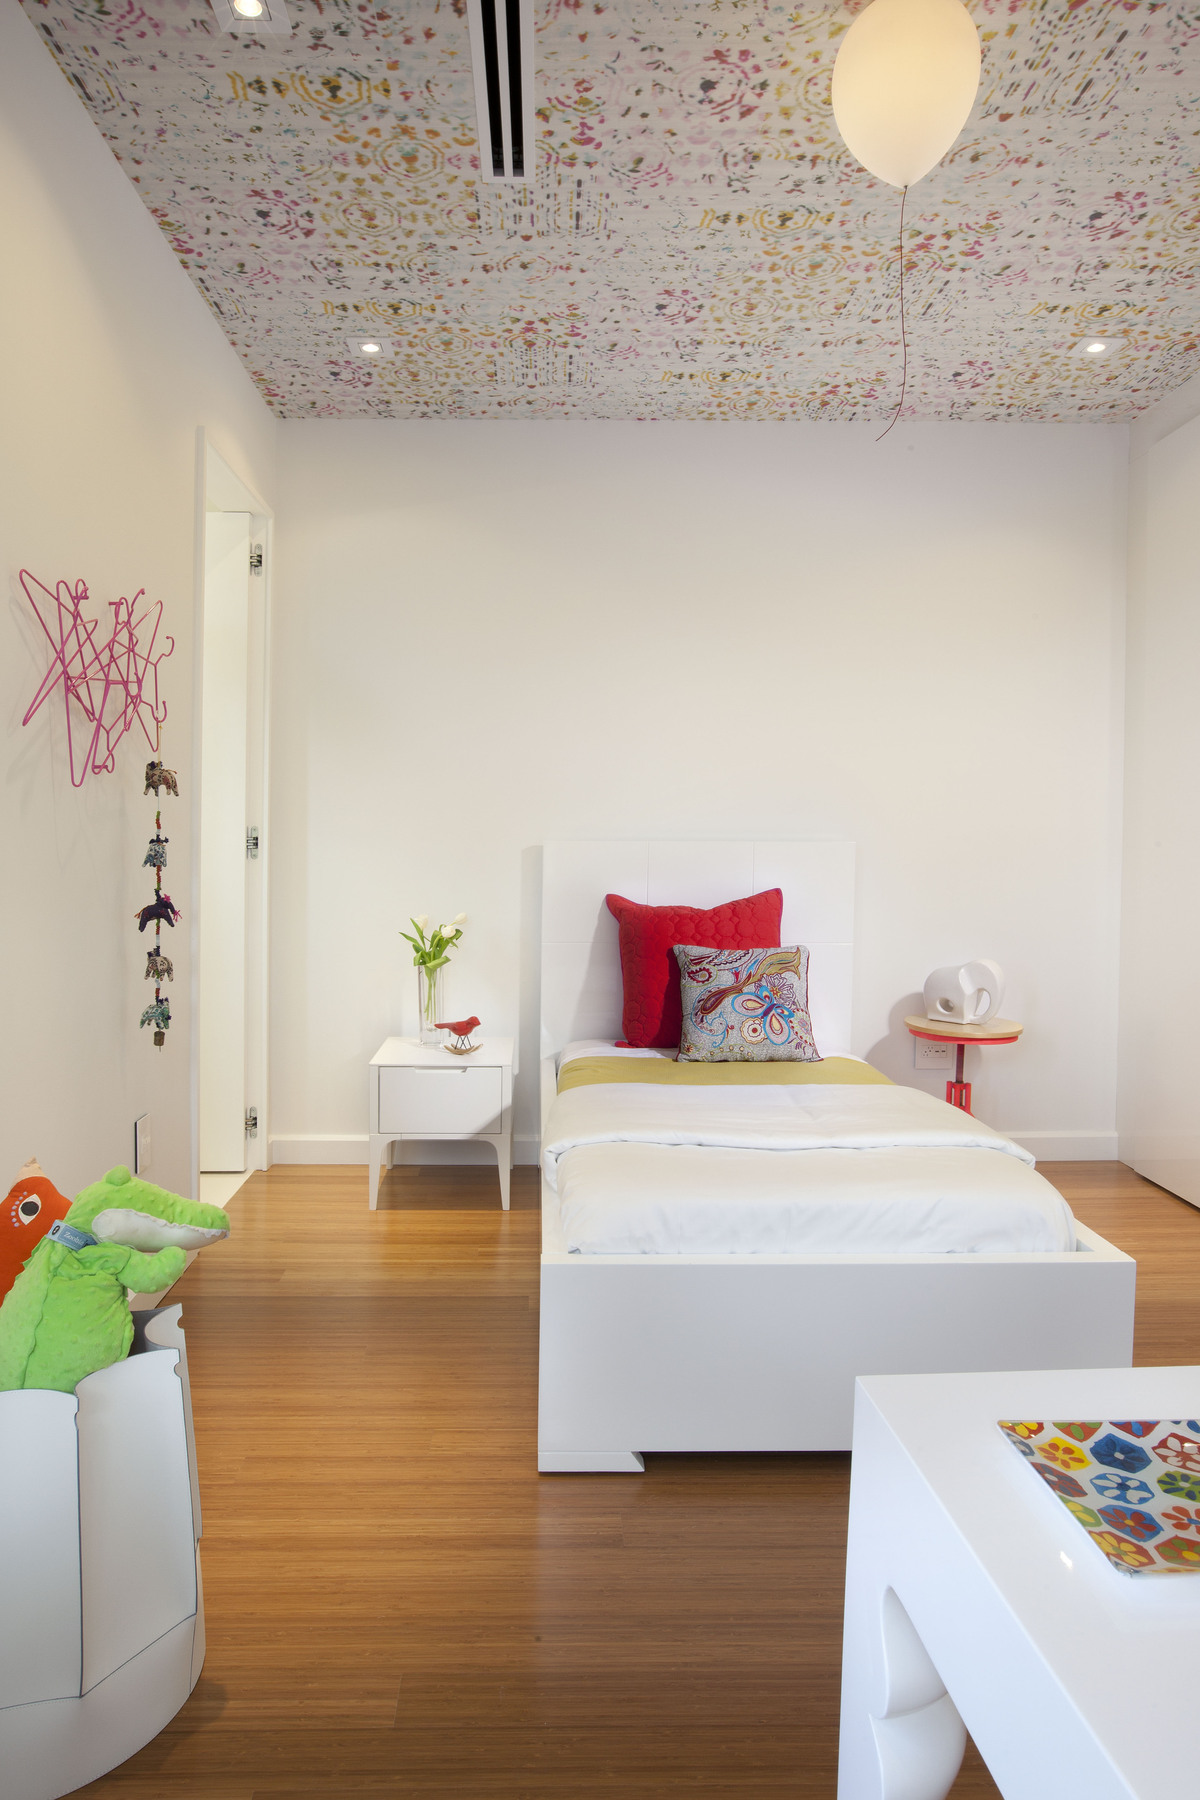 Children's Bedroom - Miami Interior Design